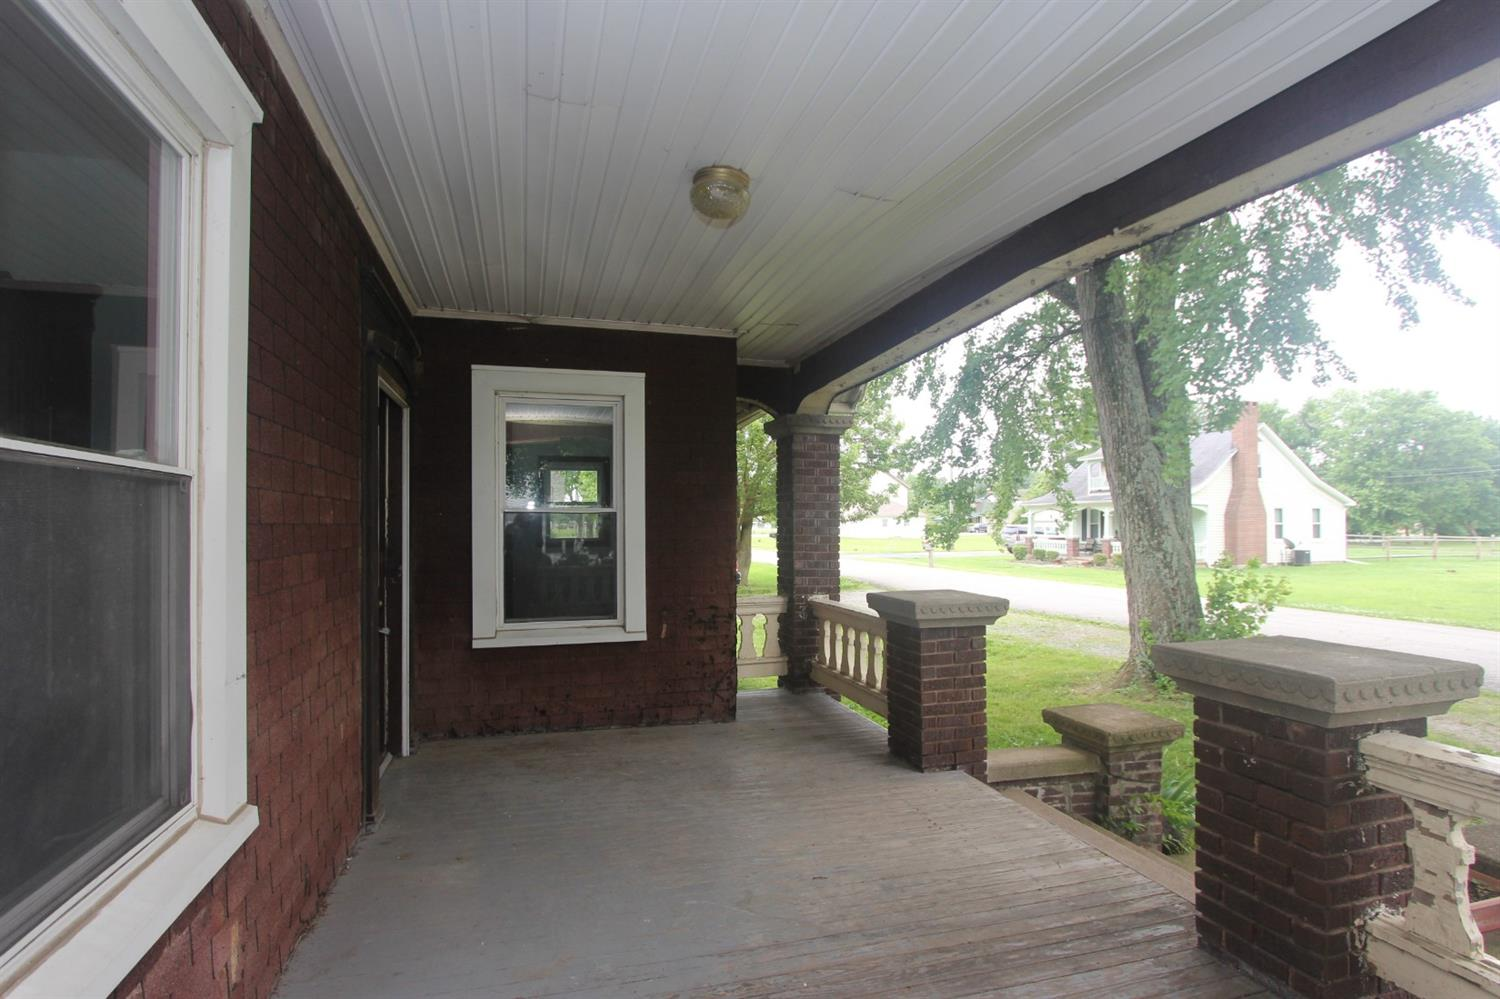 Photo 3 for 211 E Humber St Perry Twp., OH 45118